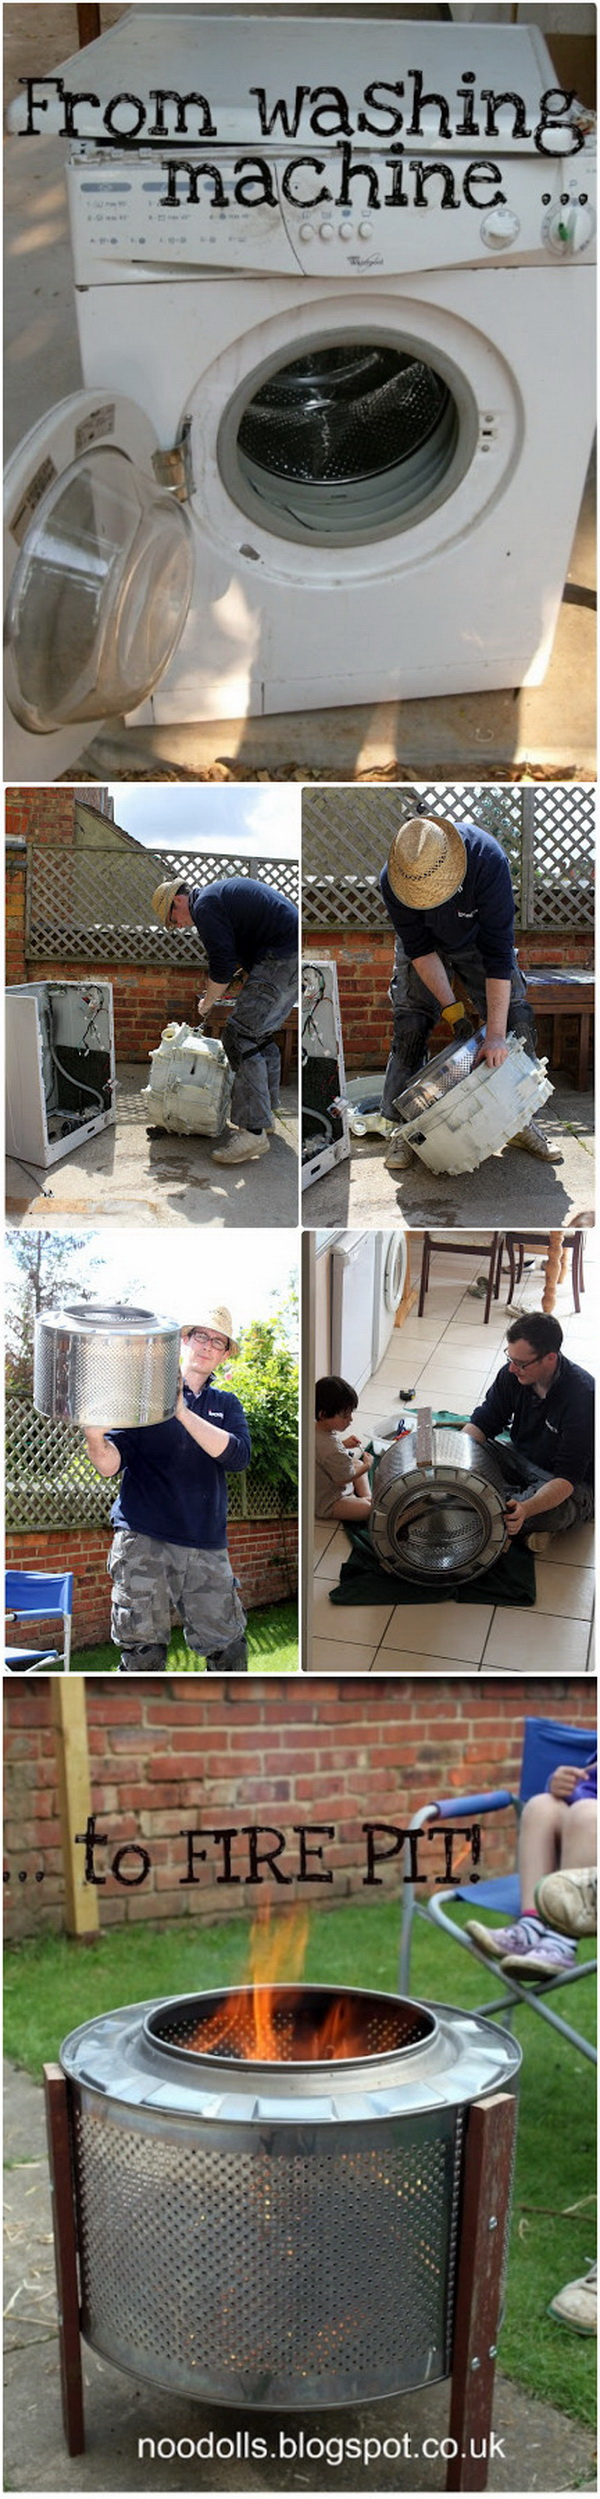 Homemade Fire Pit: Up-cycled Washing Machine.